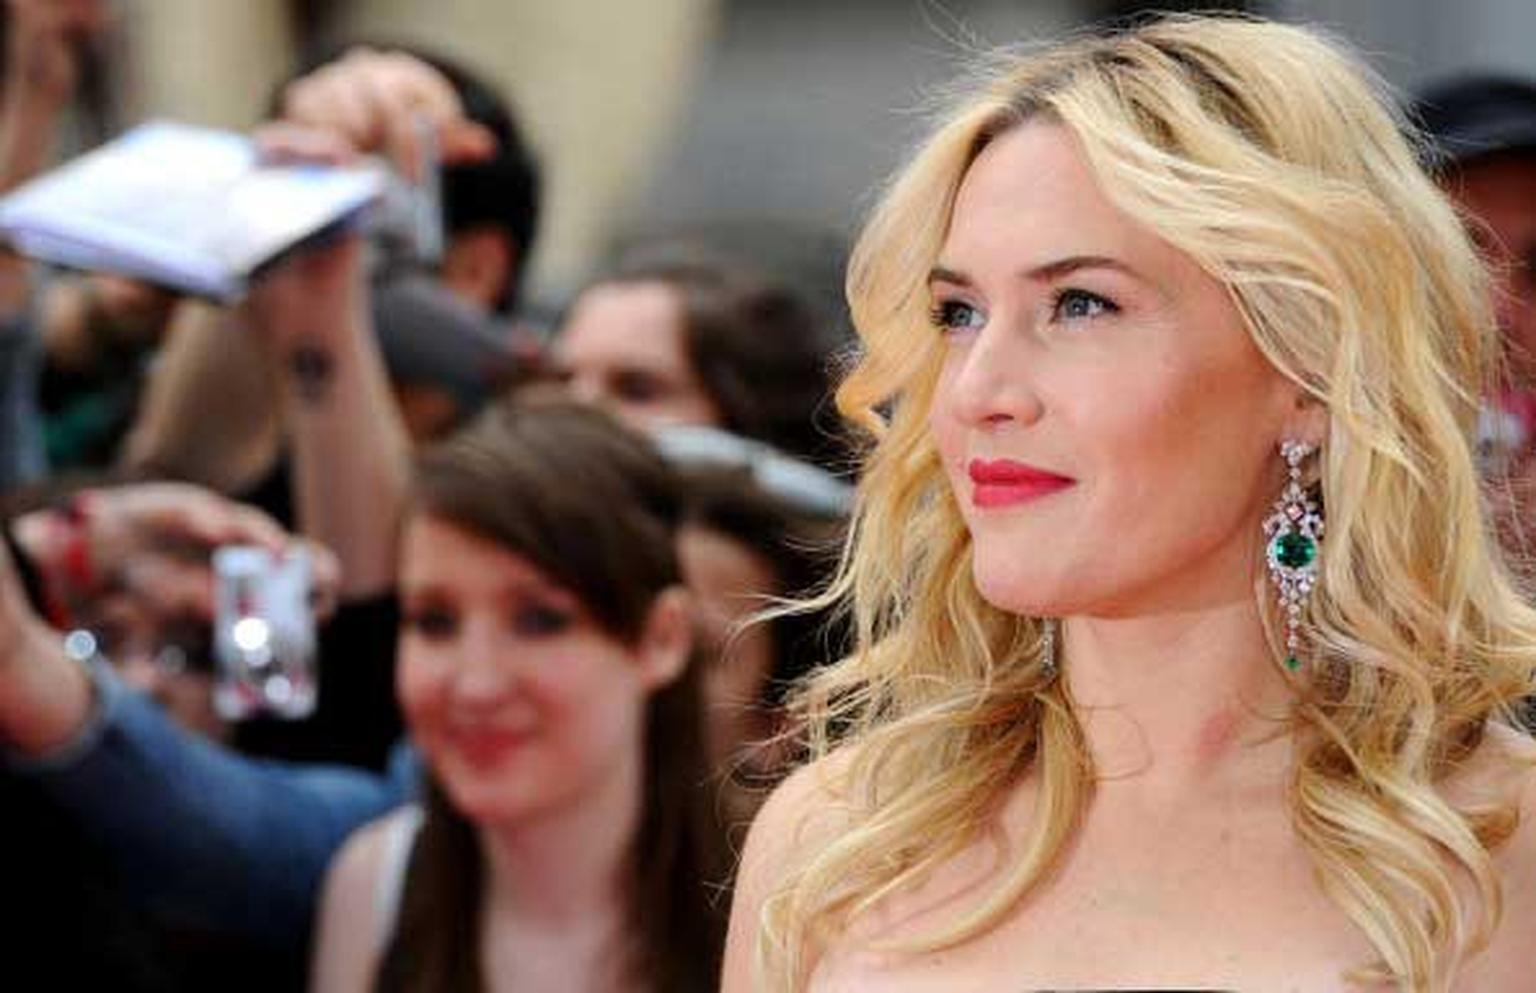 Kate Winslet looks radiant in David Morris emerald and diamond earrings as she says hello to fans at the London premiere of her new film, Divergent